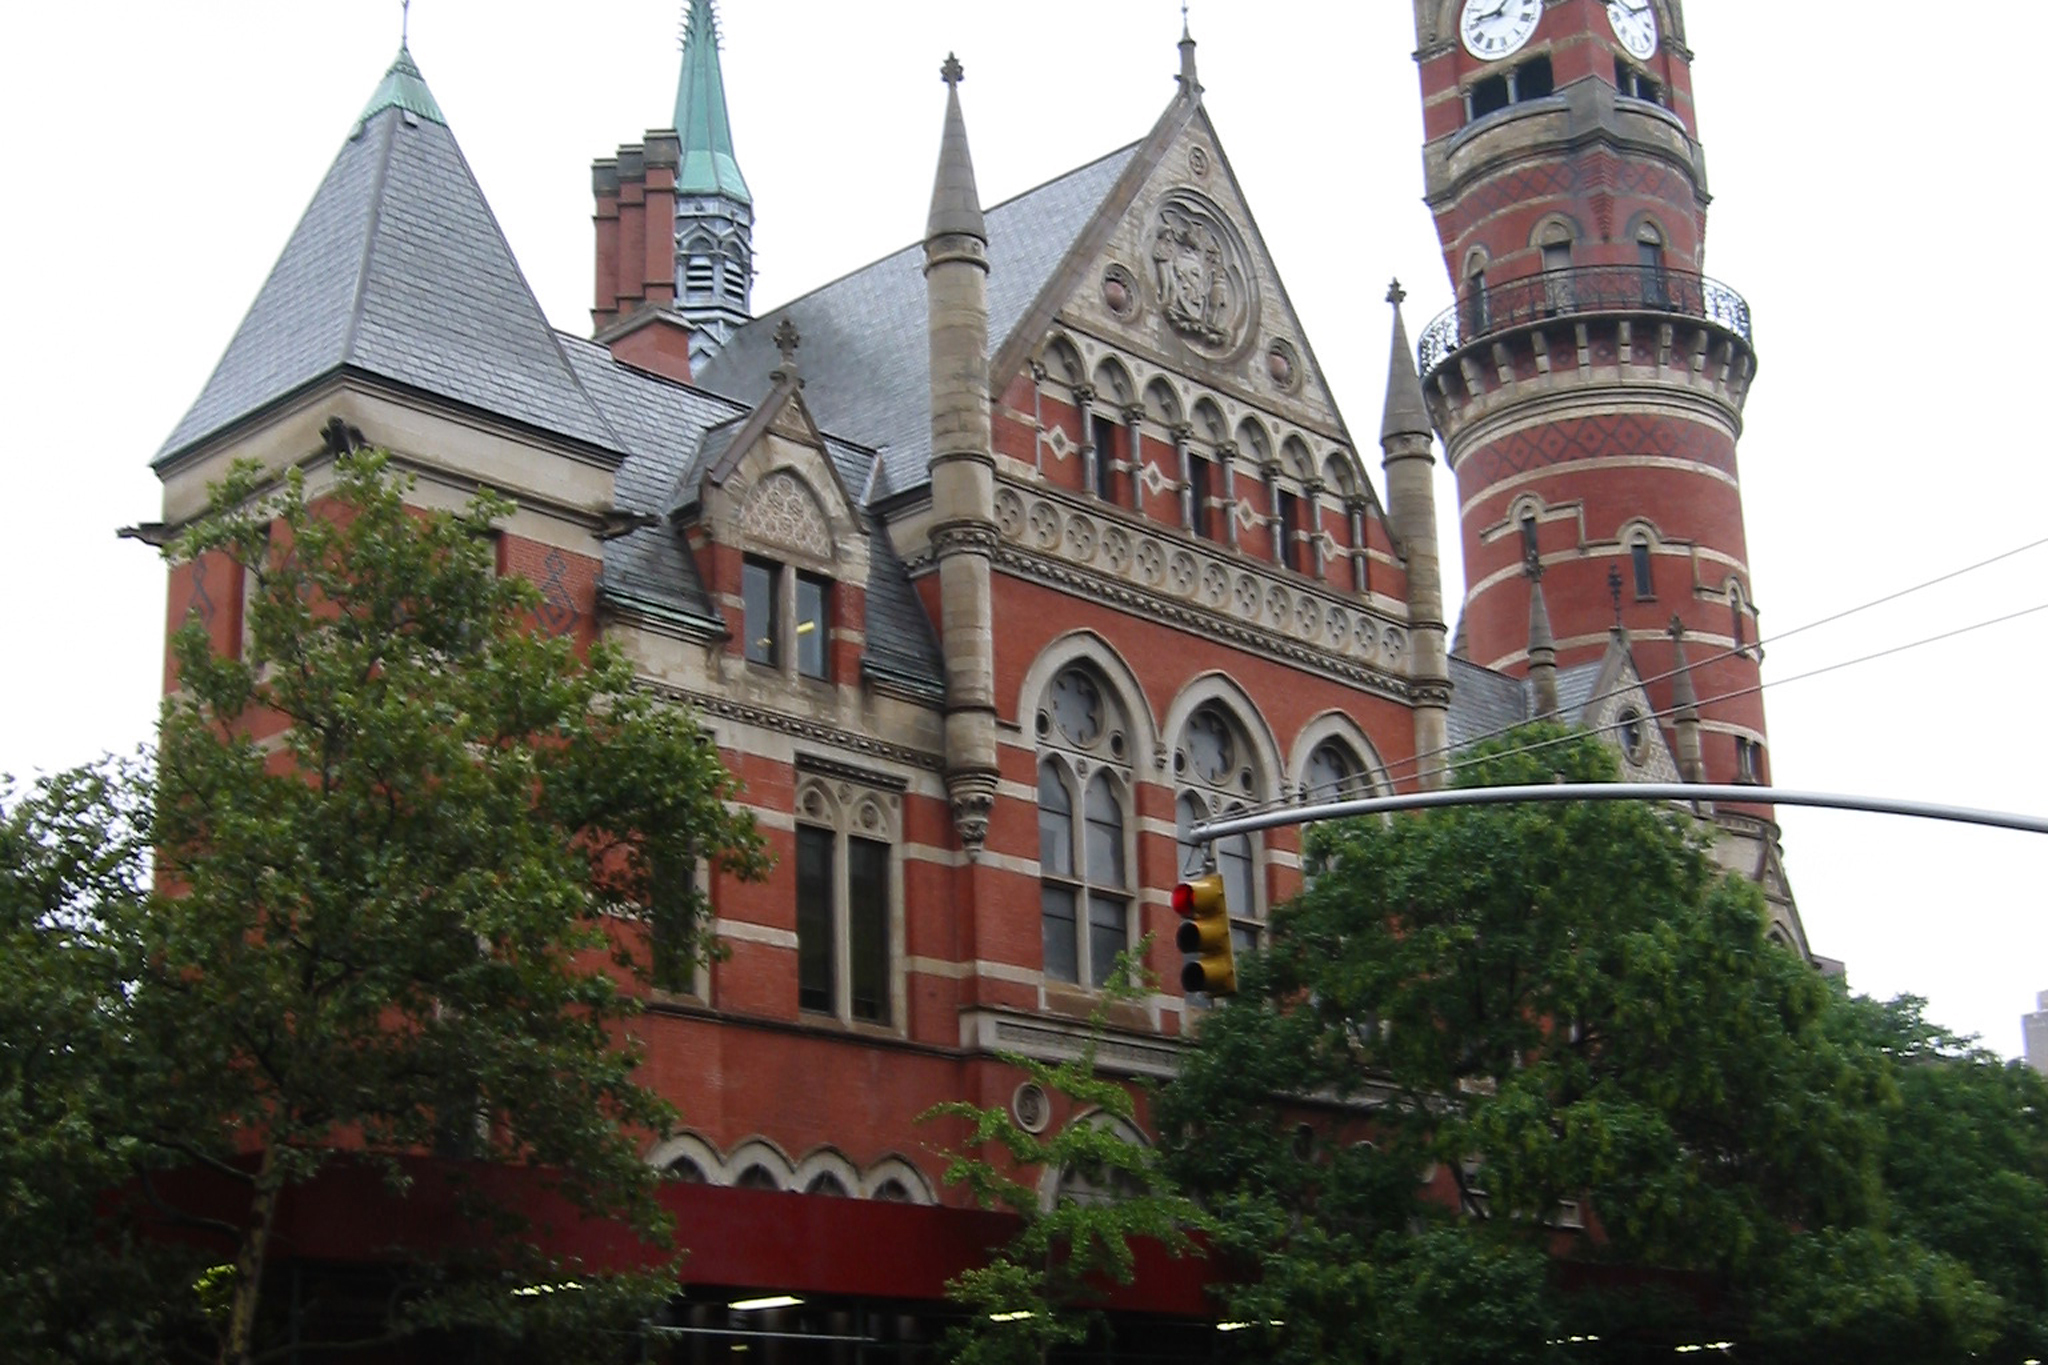 m-jefferson market library_cred no credit.jpg